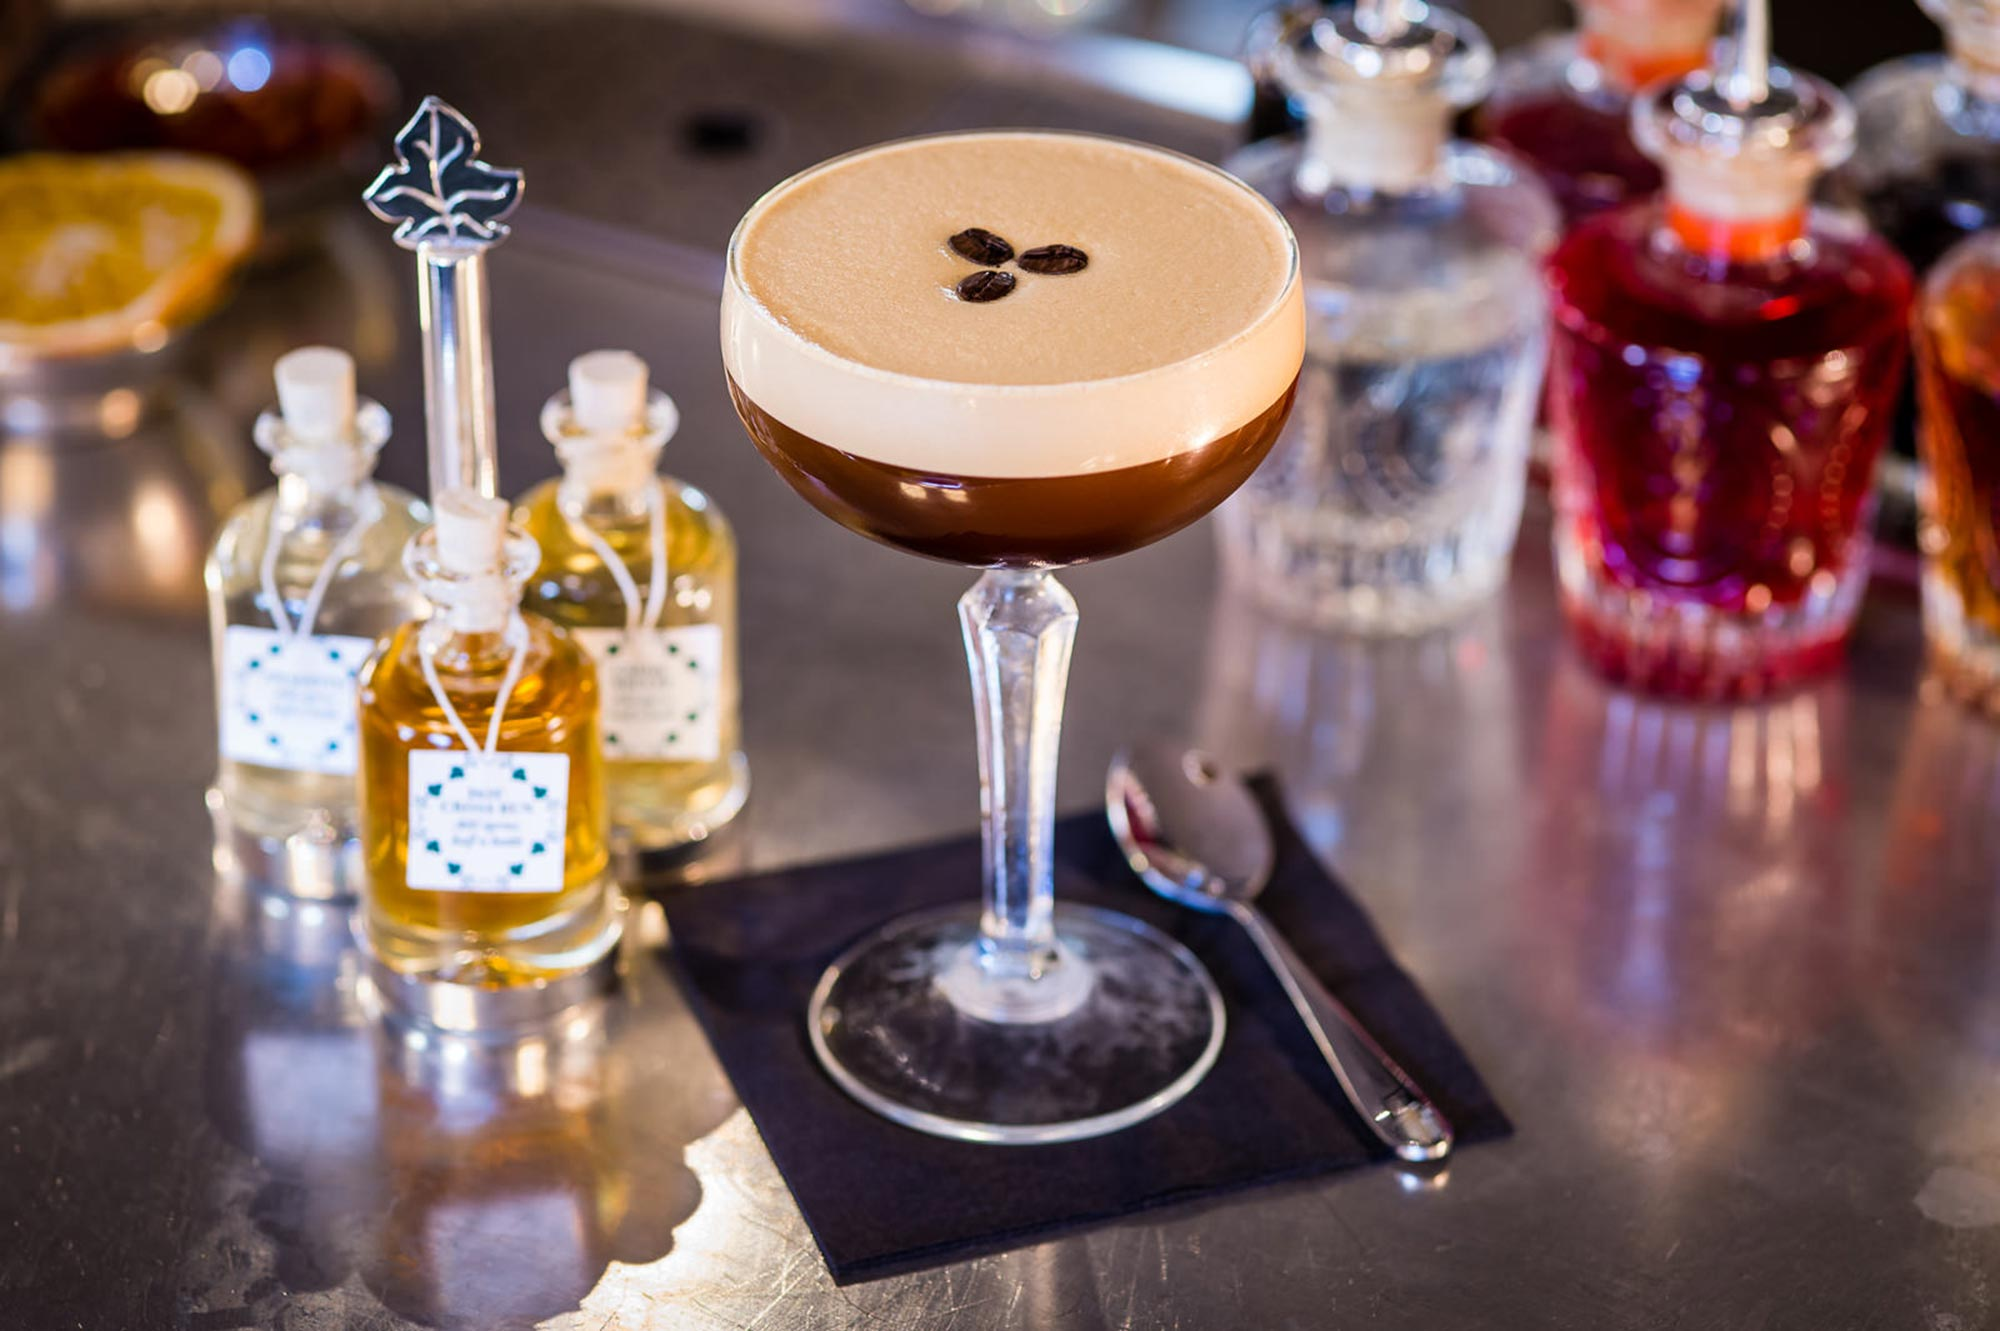 The Ivy Collection Espresso Martini and Infusions Winter on Wimbledon Common - The Ivy Cafe Wimbledon - The Ivy Cafe Wimbledon